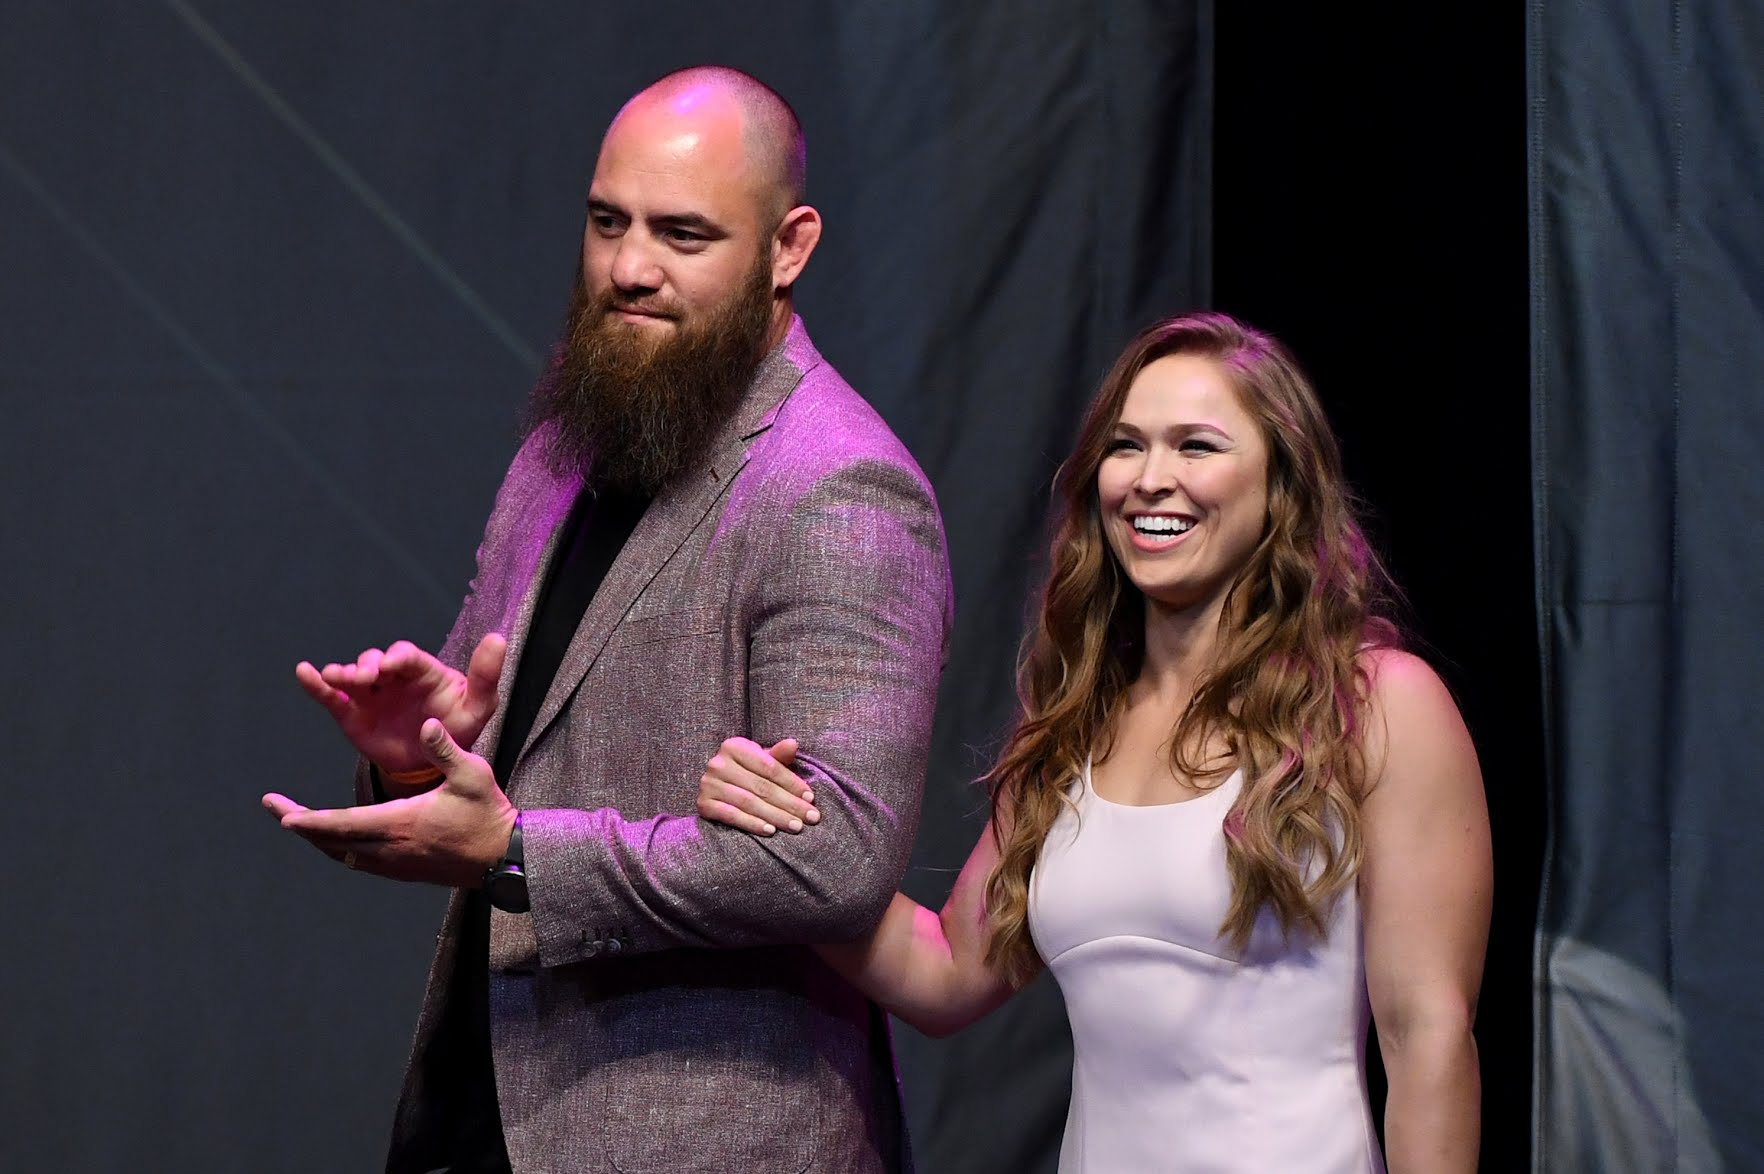 Ronda Rousey To Form WWE Mixed Tag Team With Husband Travis Browne? 1